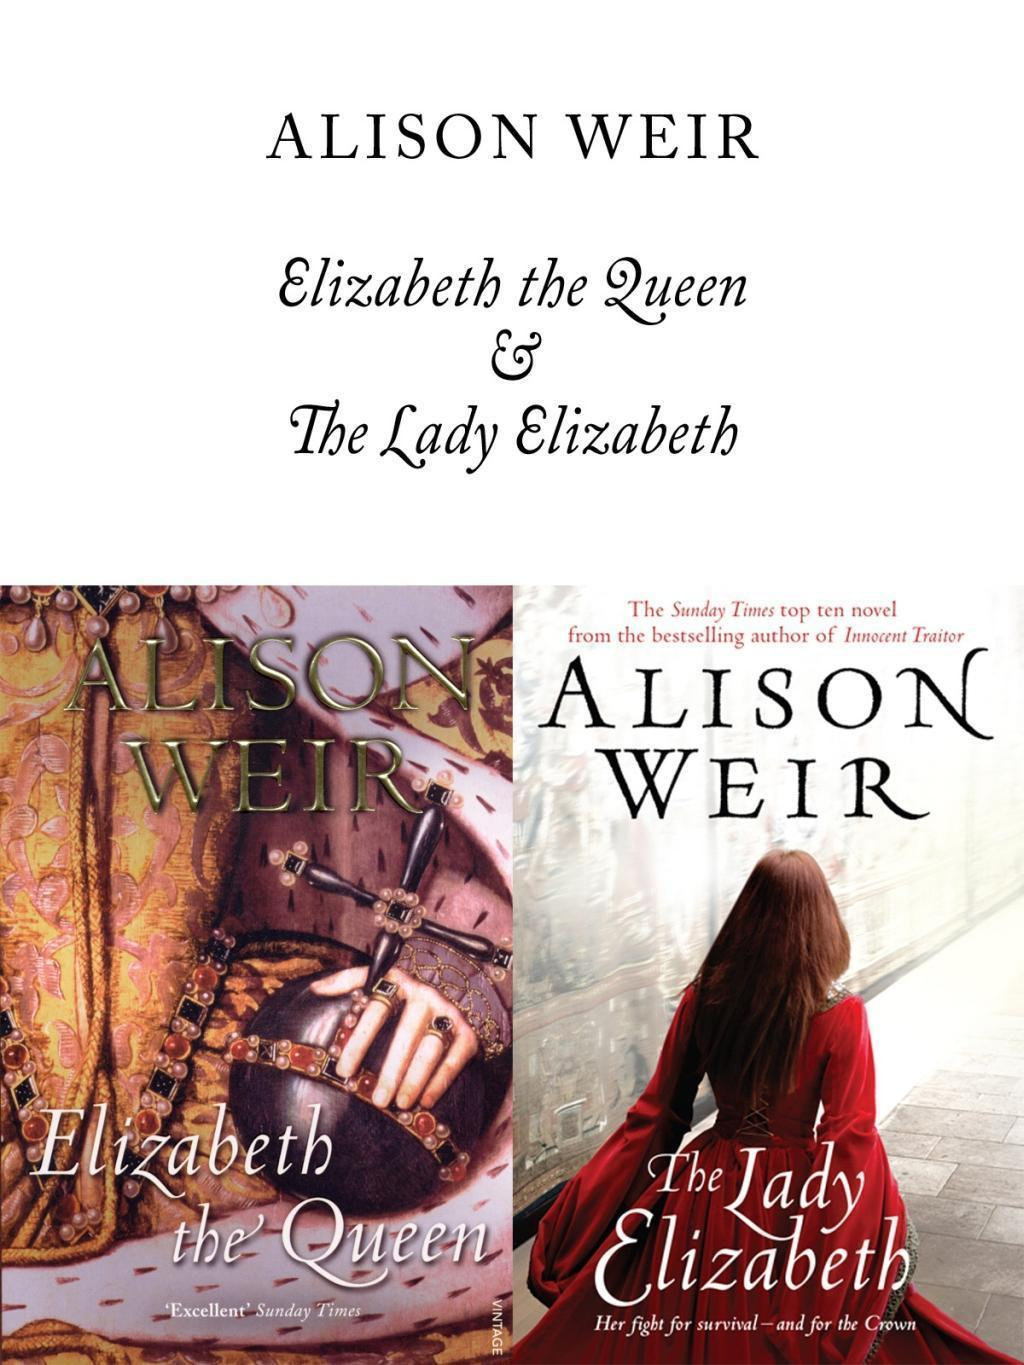 Elizabeth, The Queen and The Lady Elizabeth